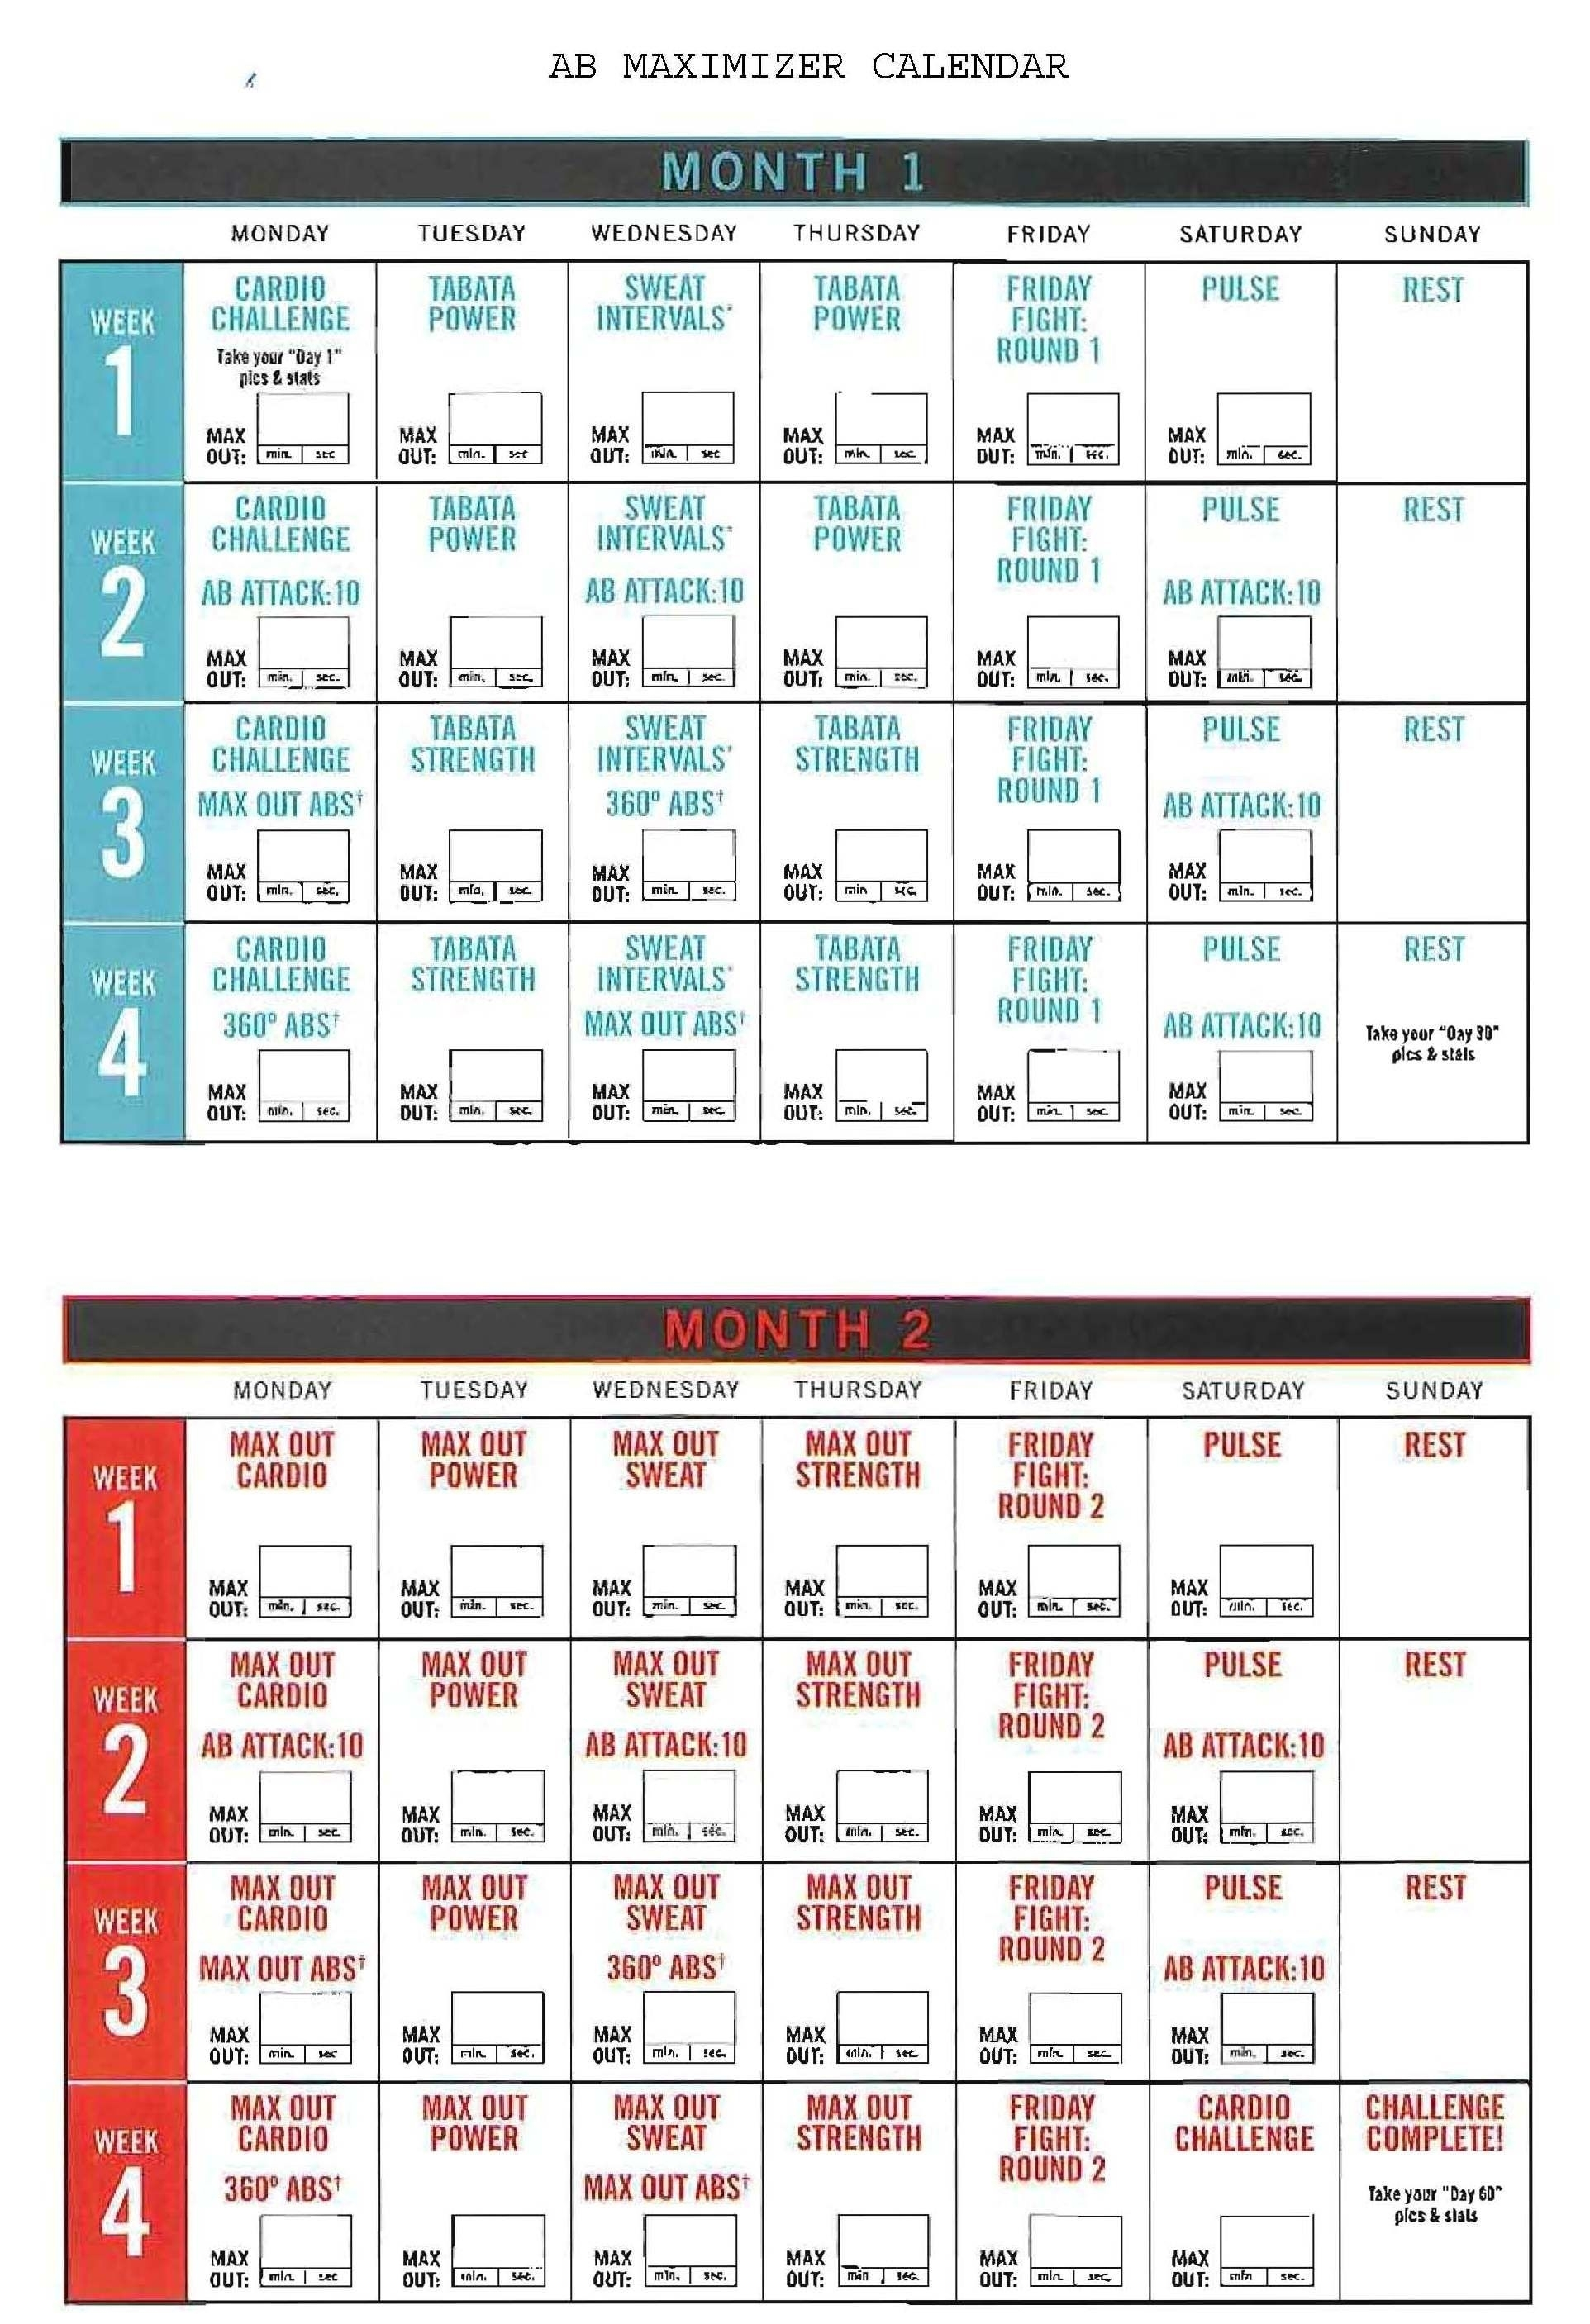 Insanity Ab Maximizer Calendar! Hit Tha Floor - Starting 12/15/14 for Shaun T Insane Abs Calendar Schedule